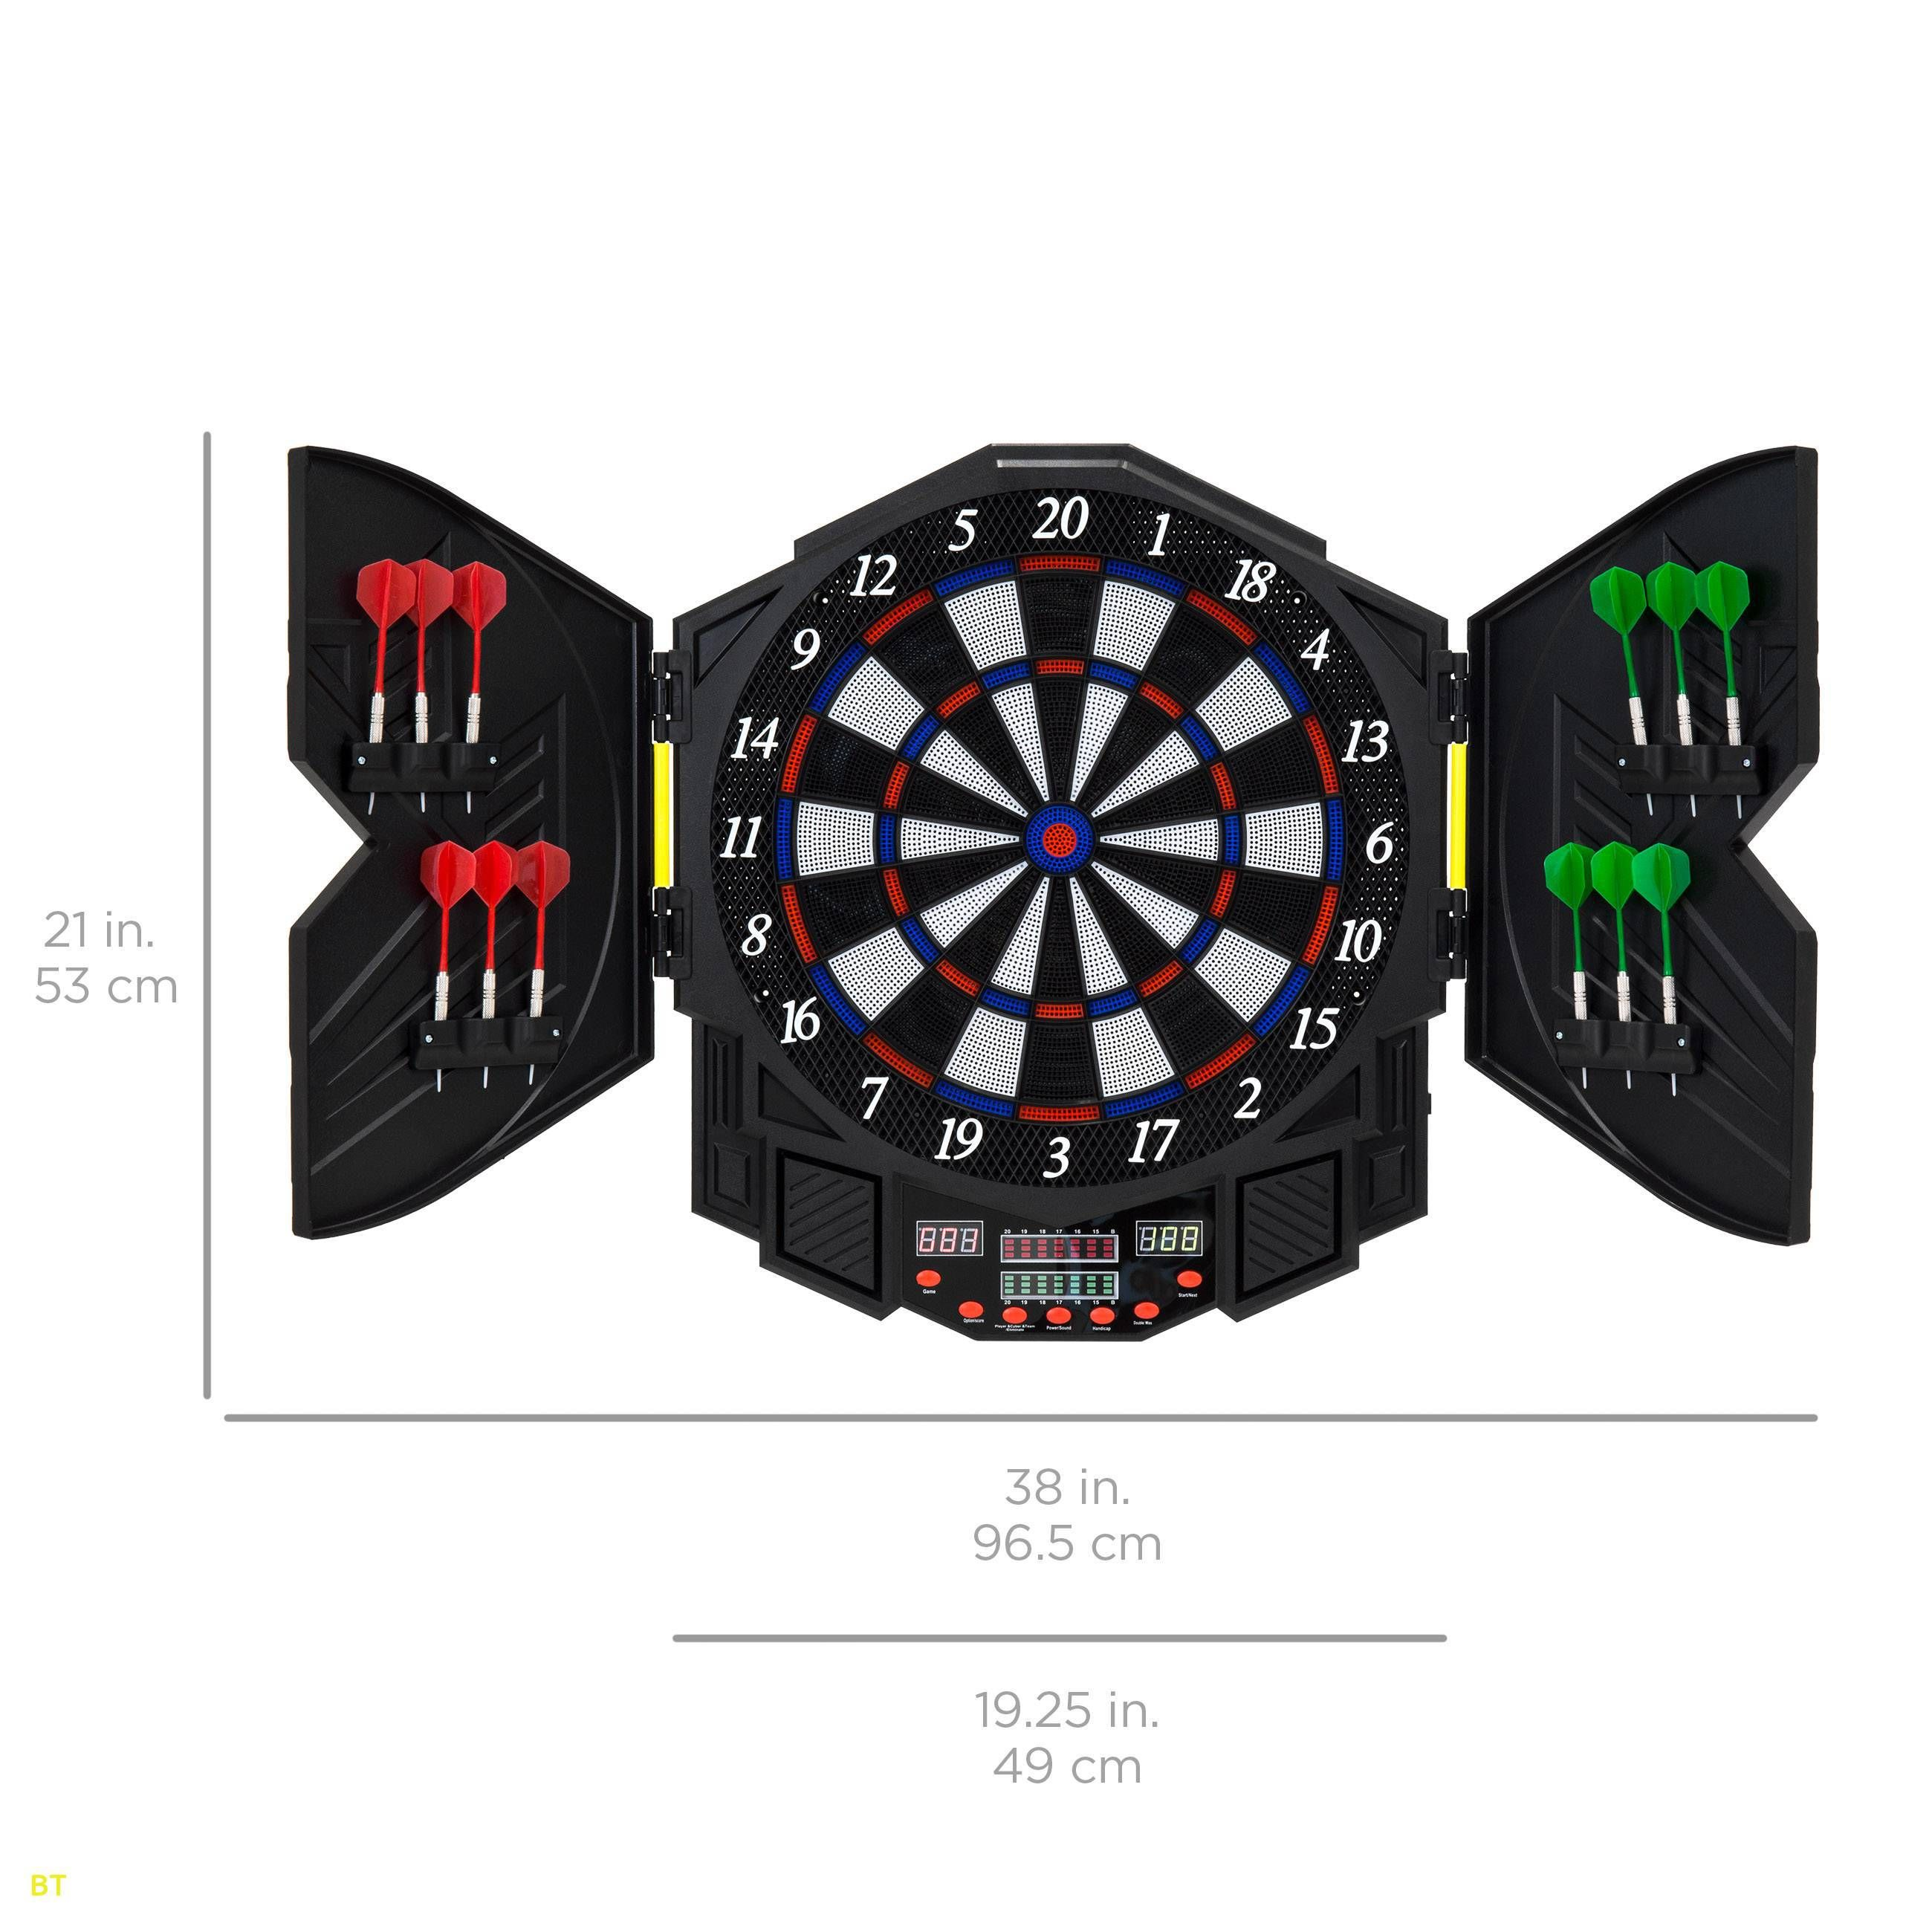 Best Of Places To Throw Darts Near Me Best Of Places To Throw Darts